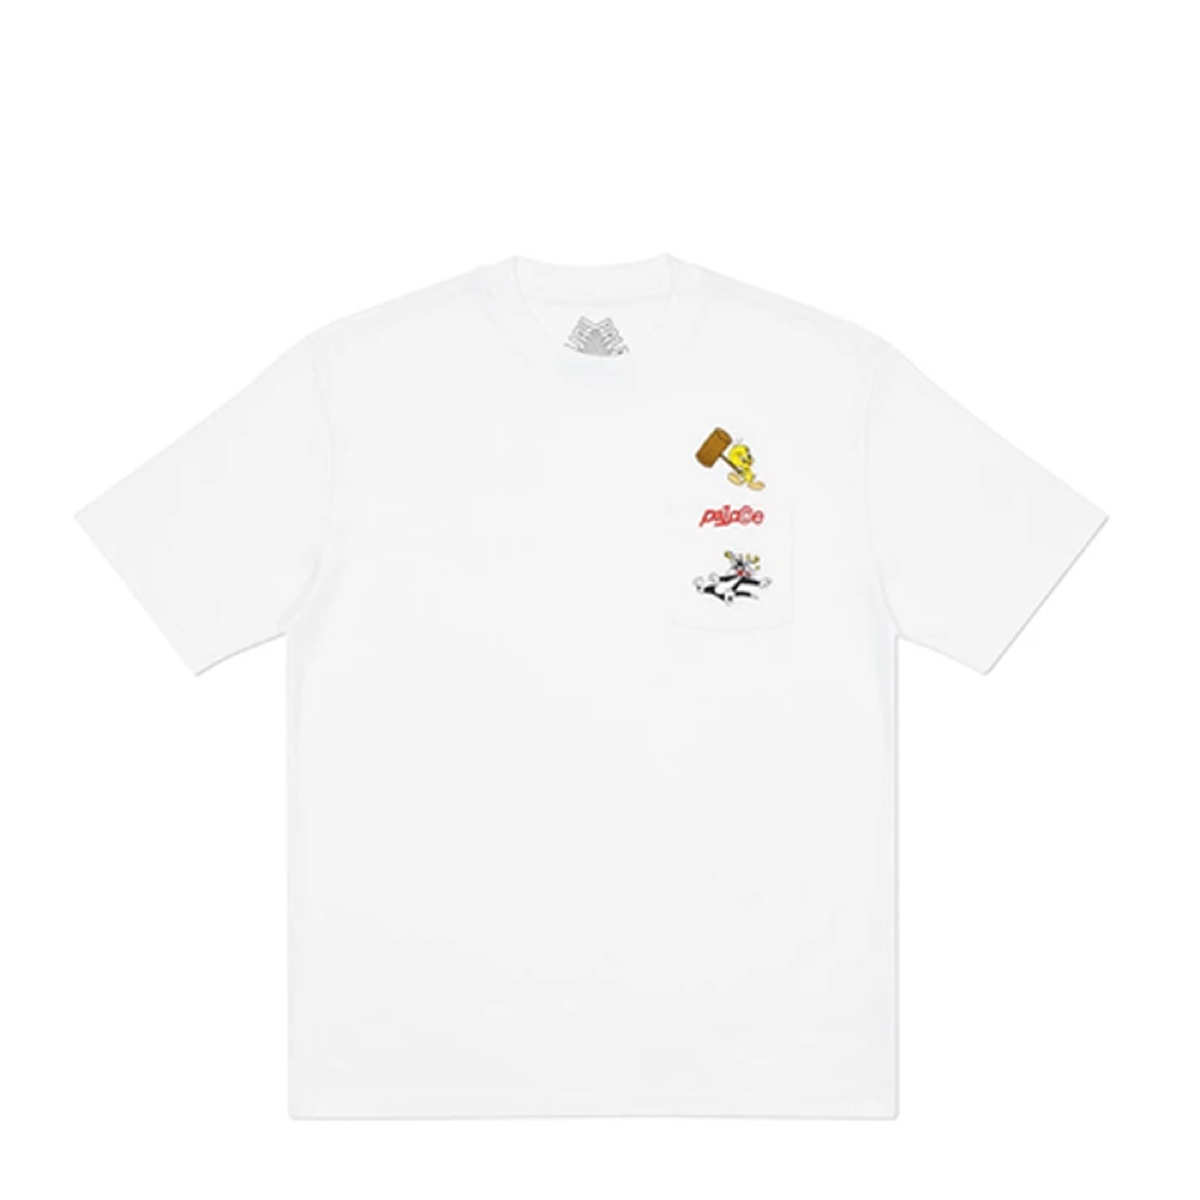 Palace X Looney Tunes T-Shirt White